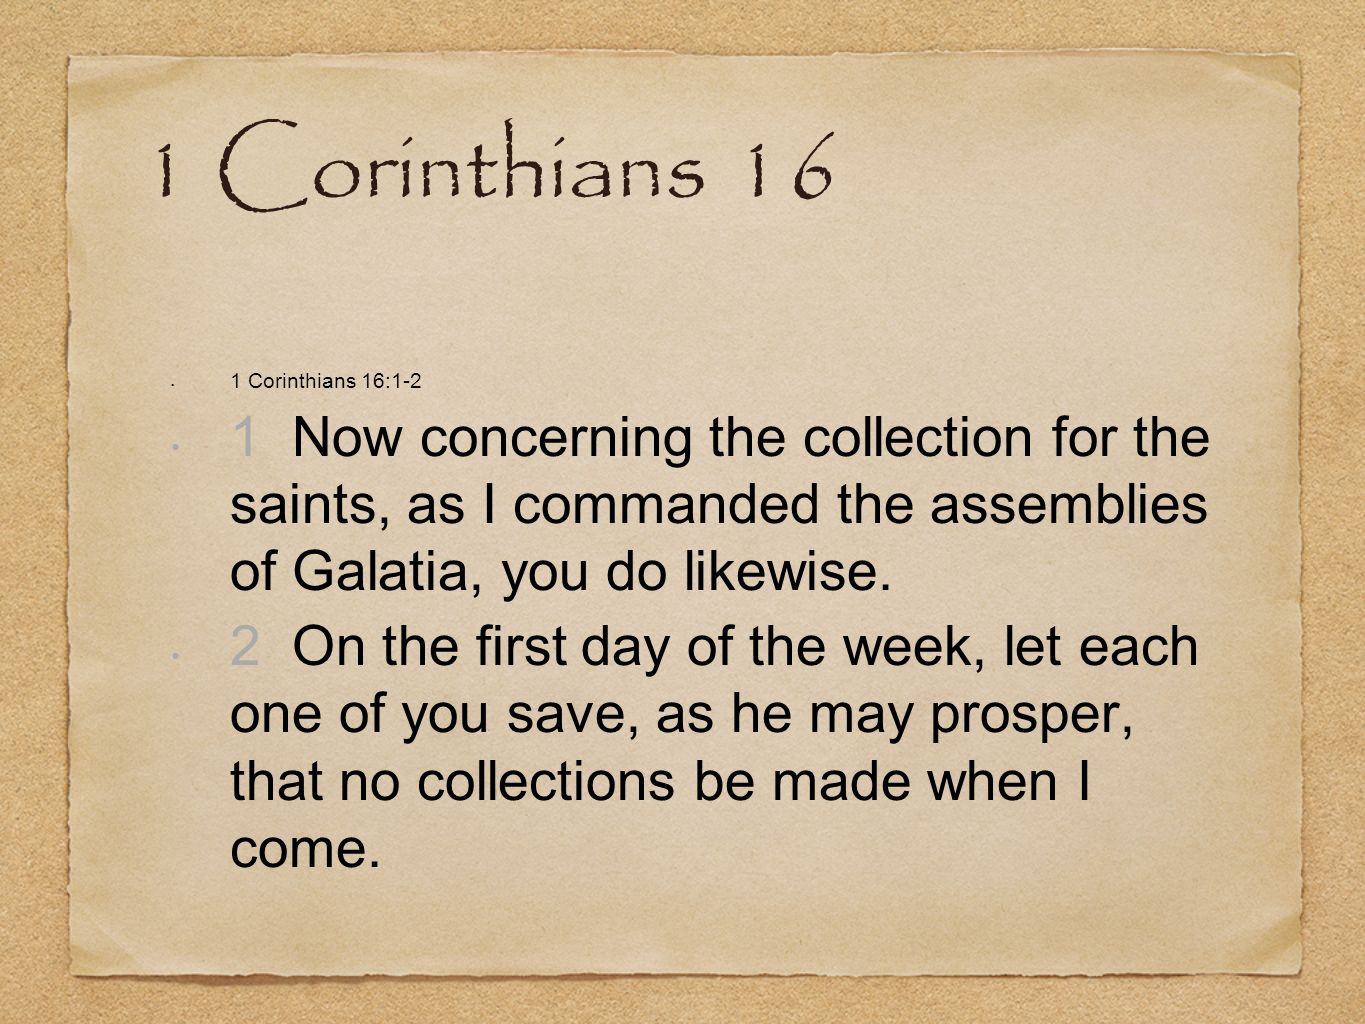 1 Corinthians 16 1 Corinthians 16:1-2. 1 Now concerning the collection for the saints, as I commanded the assemblies of Galatia, you do likewise.